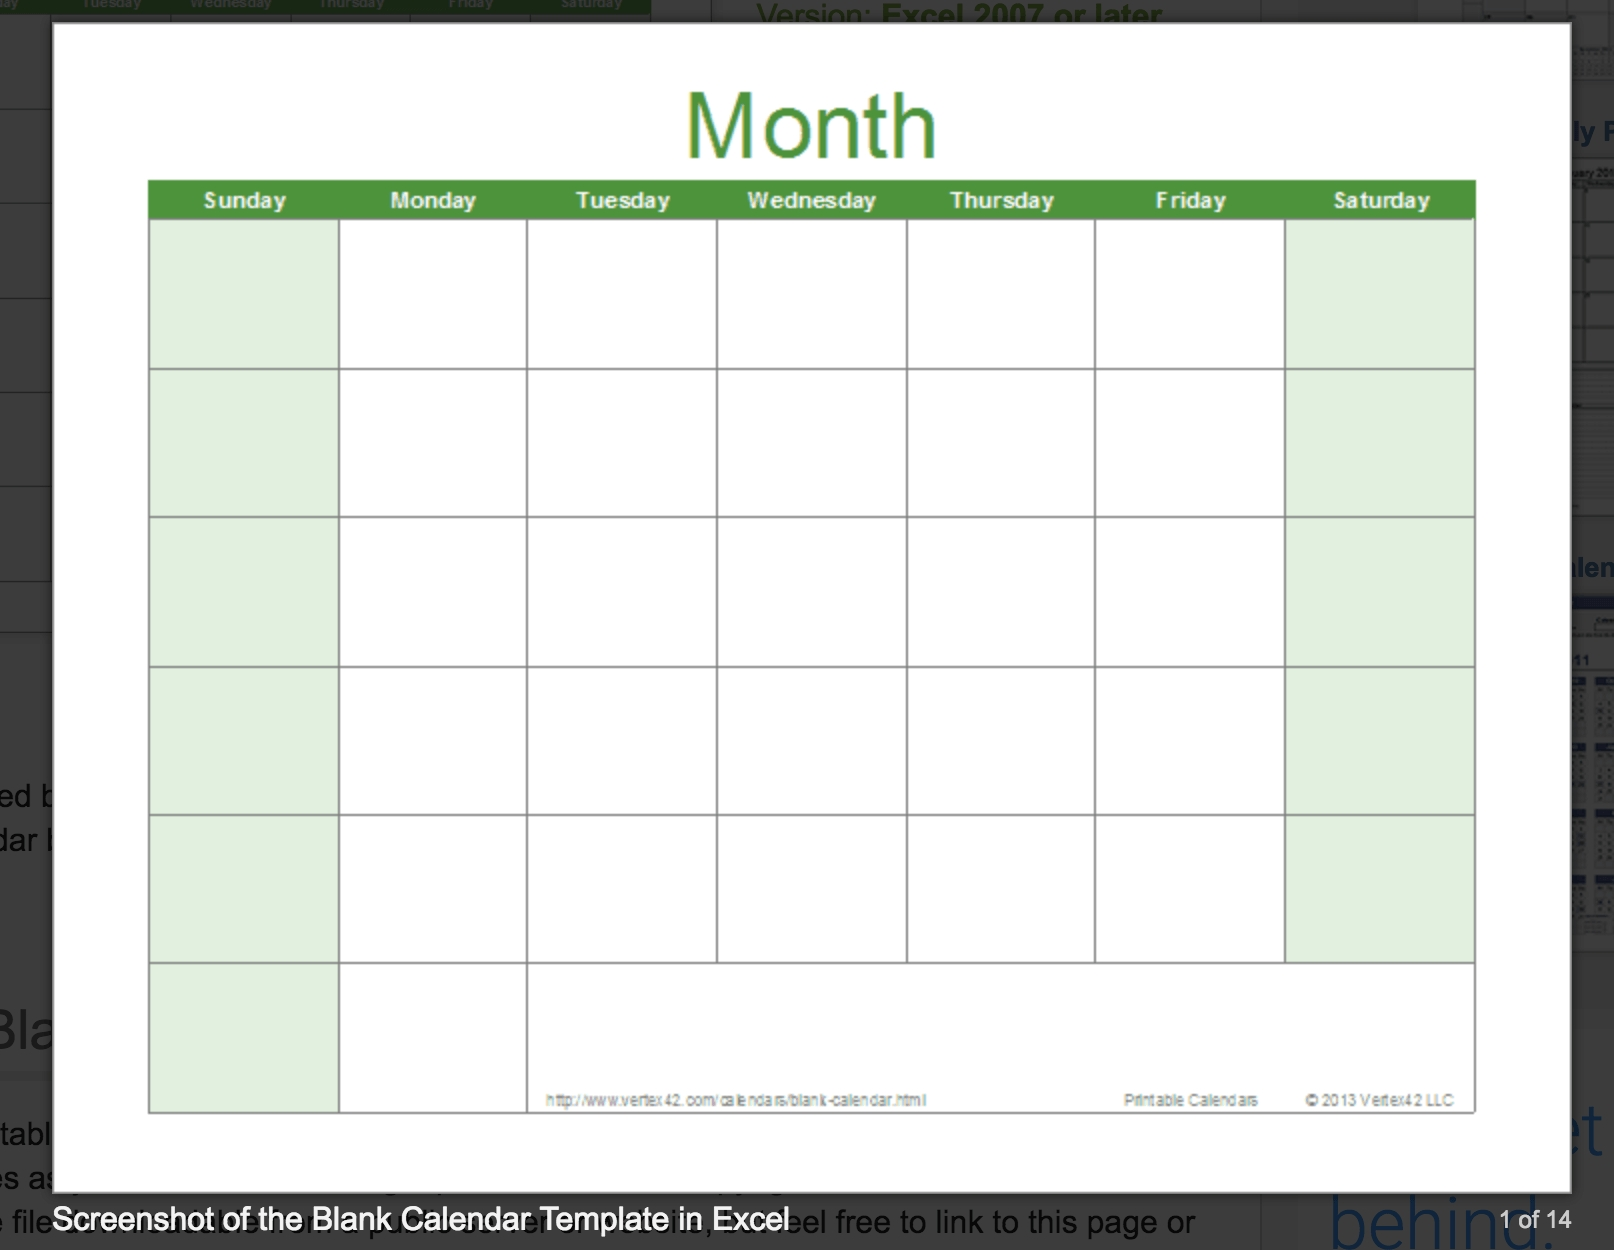 Blank Calendar: Wonderfully Printable 2019 Templates pertaining to Blank One Month Calendar Template